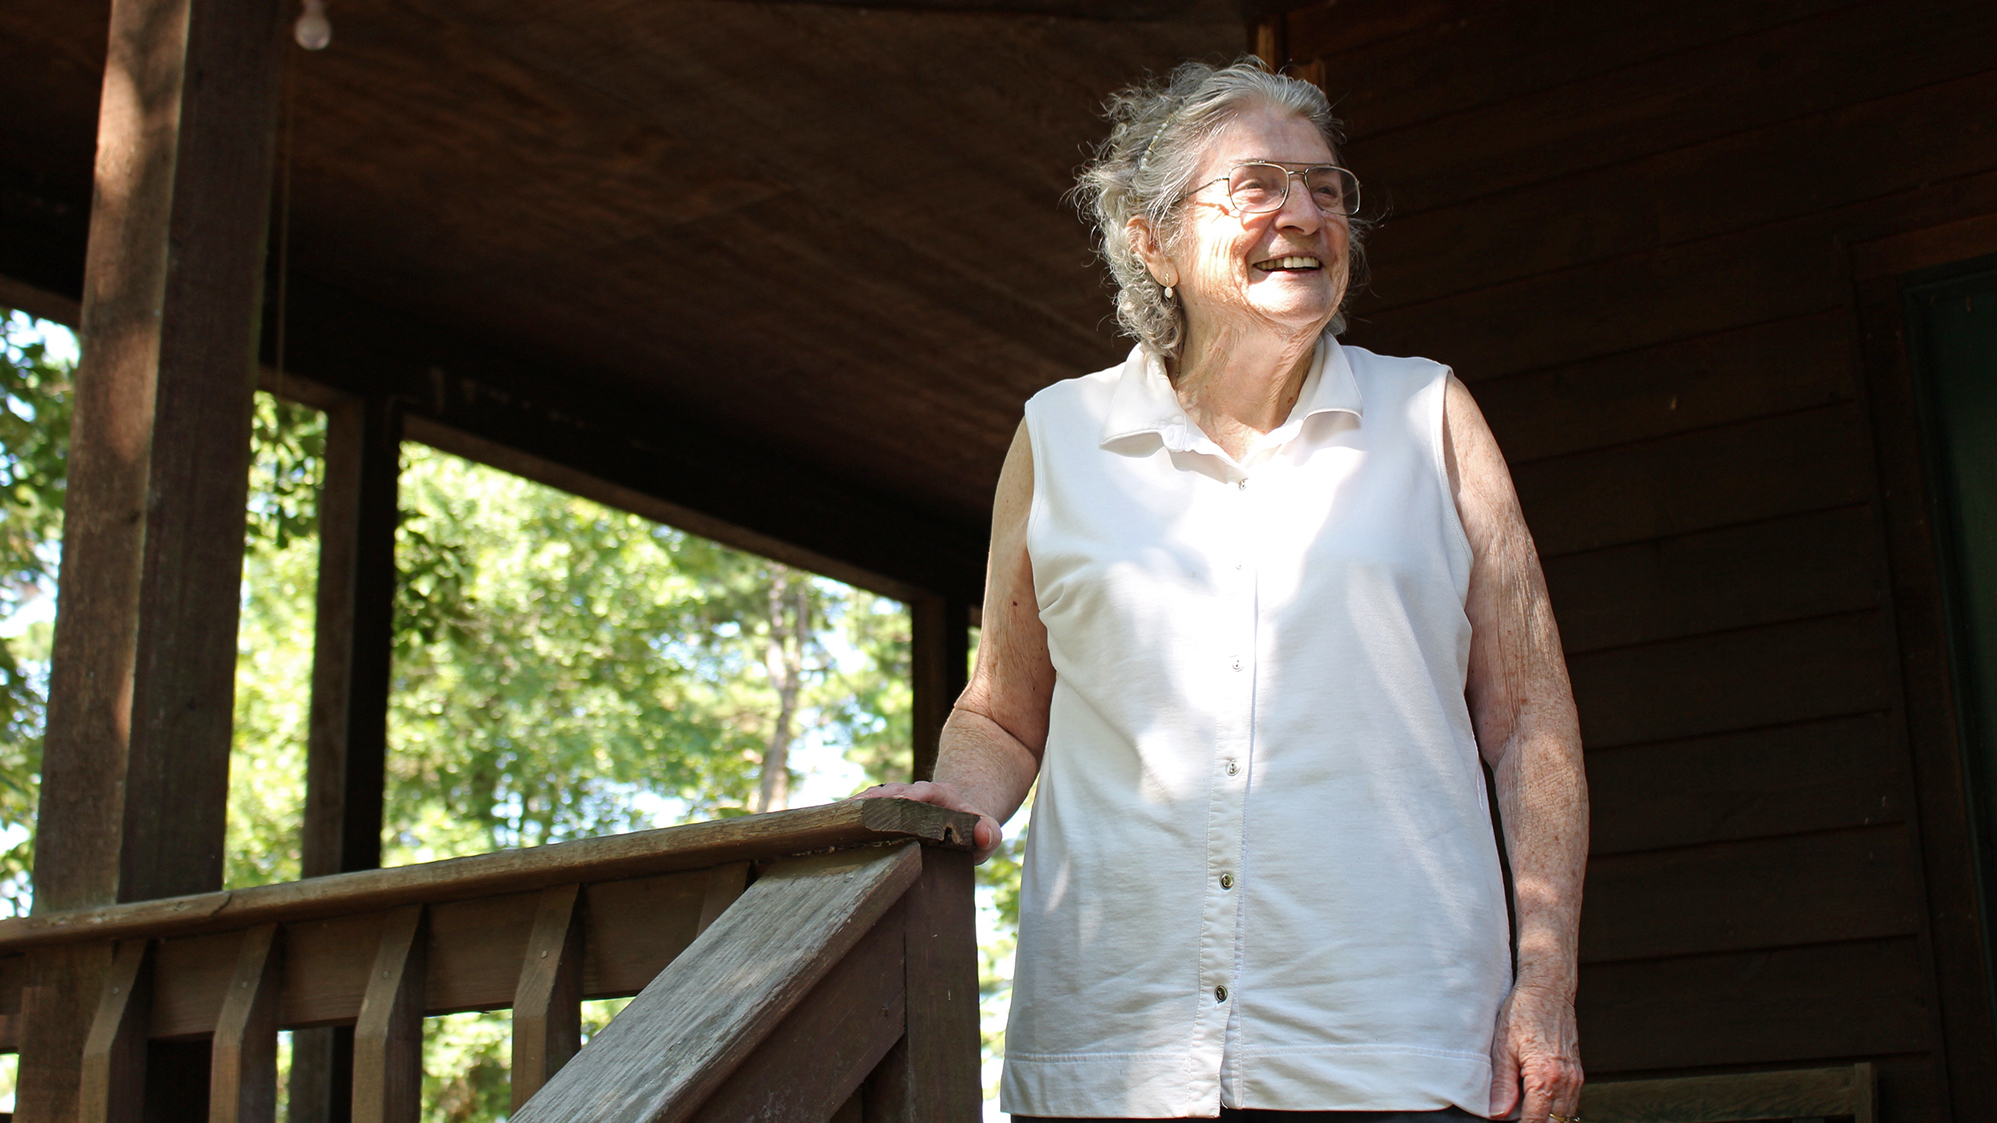 Lulabelle Berry surveys the 600 acres she and her husband, Jimmy, own in the Ozarks near Mountain View, Ark. Berry walks laps on her porch to aid her recovery from a stroke. She says she